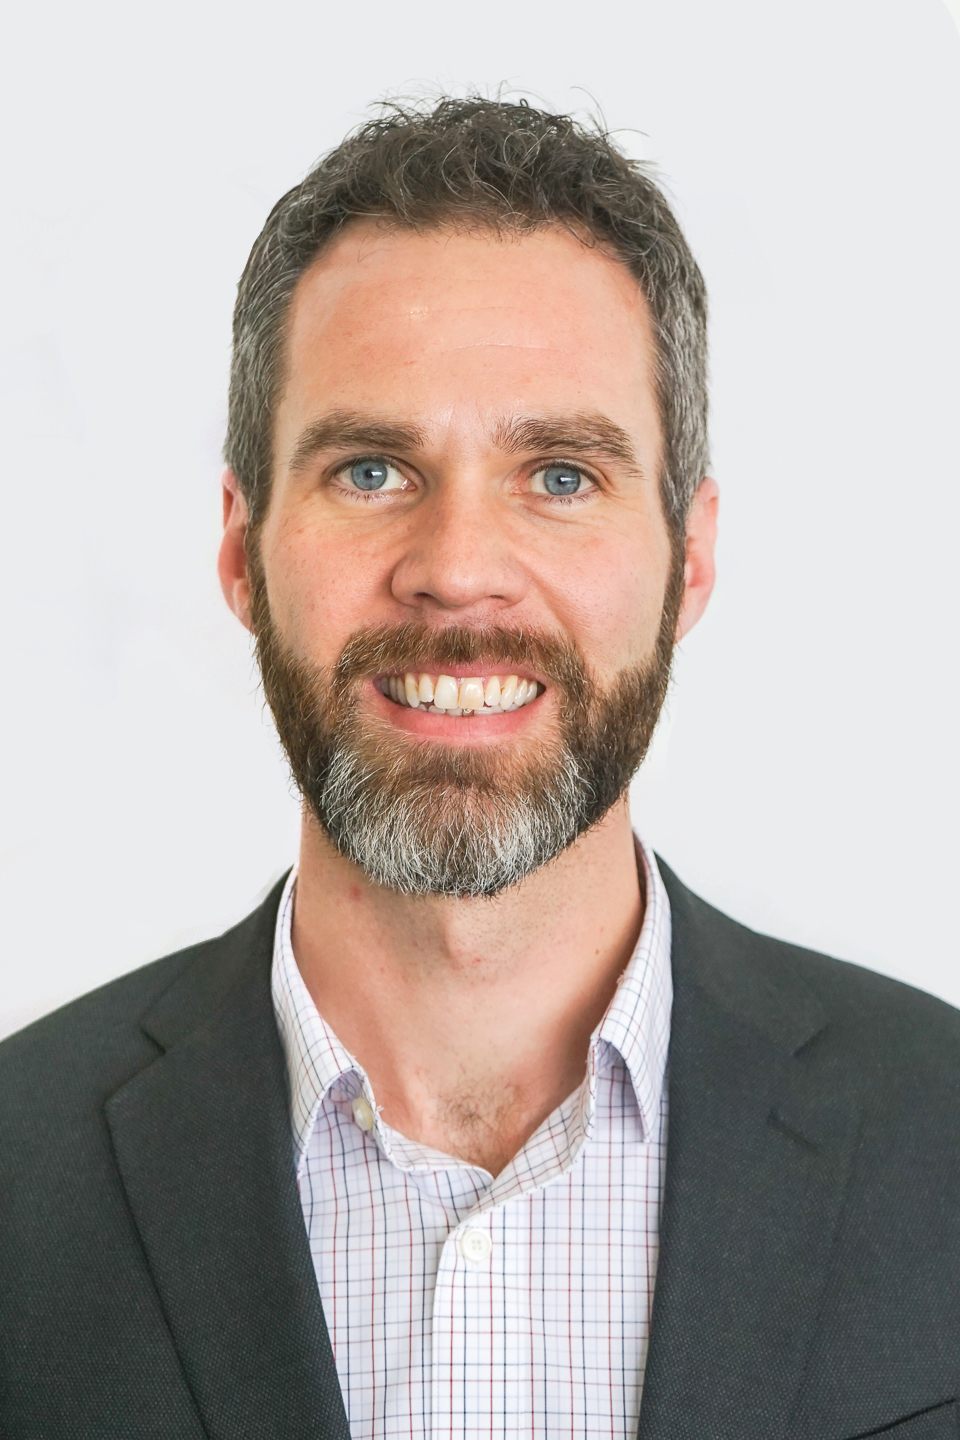 Jason Hill - Financial Services Manager